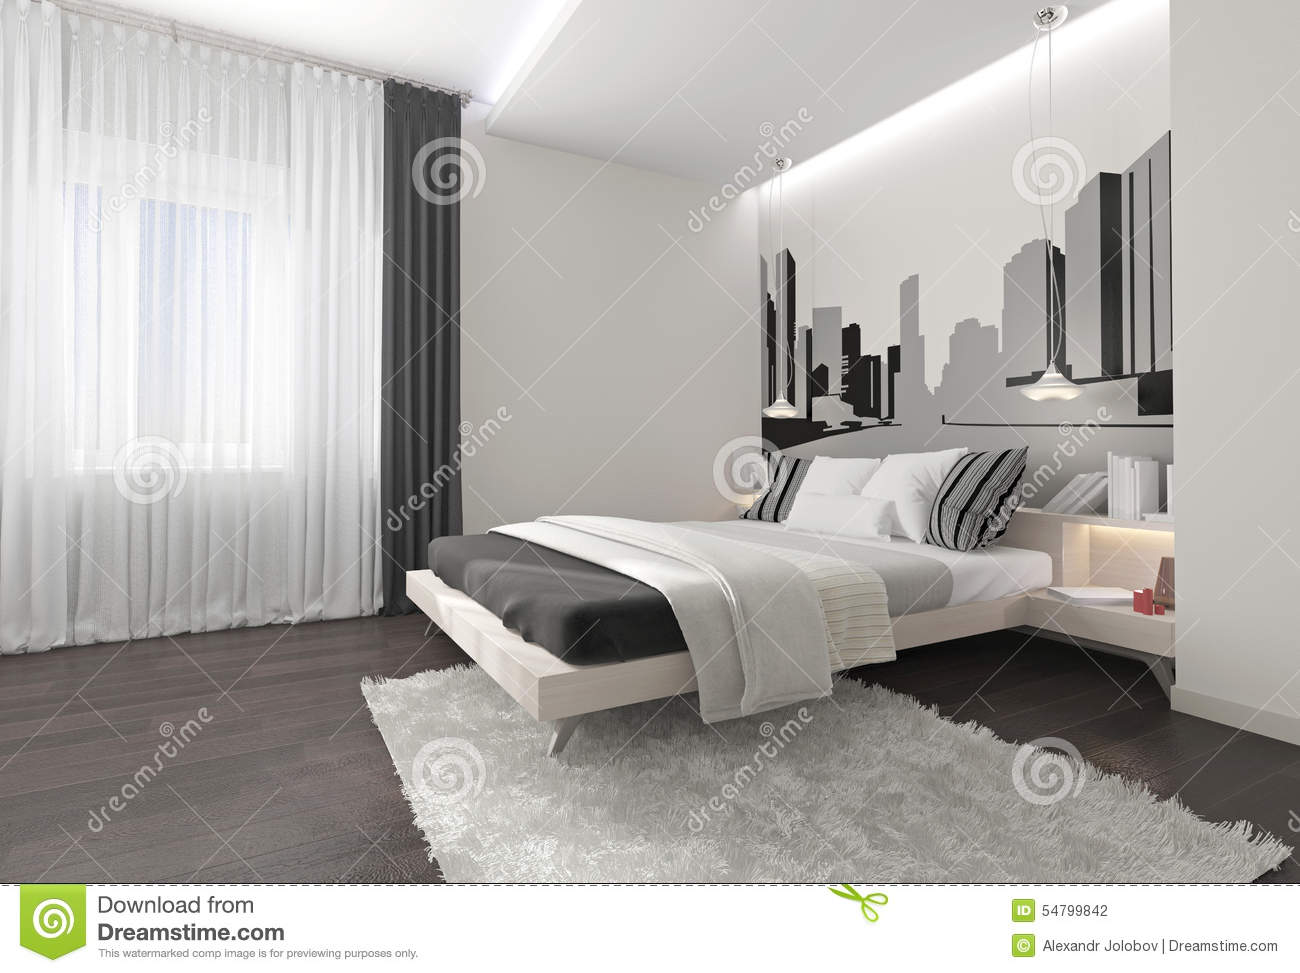 modern bedroom interior with dark curtains stock photo image of relaxation bedroom 54799842. Black Bedroom Furniture Sets. Home Design Ideas